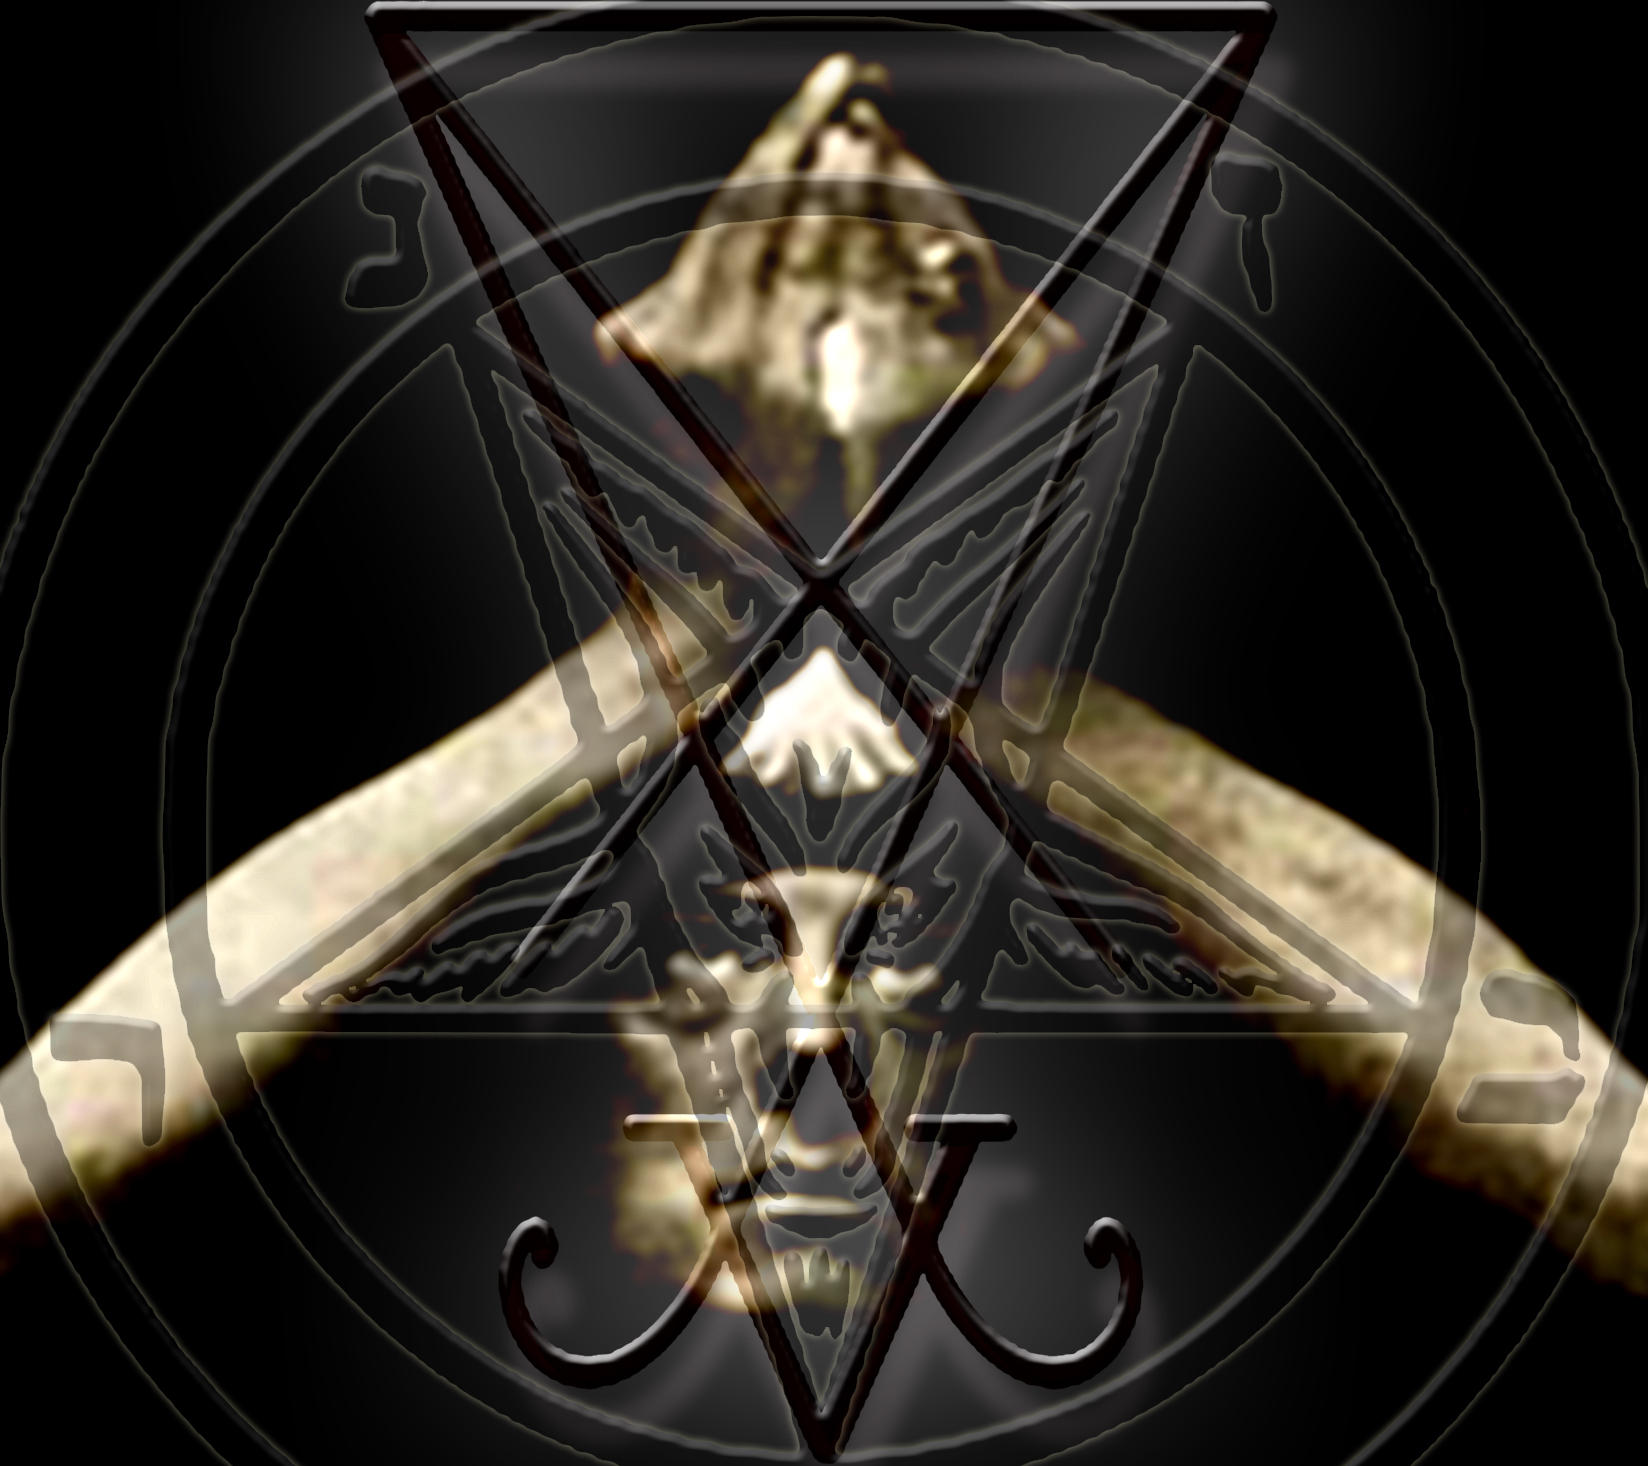 Aleister Crowley Satanic Illuminati Freemason 666 By